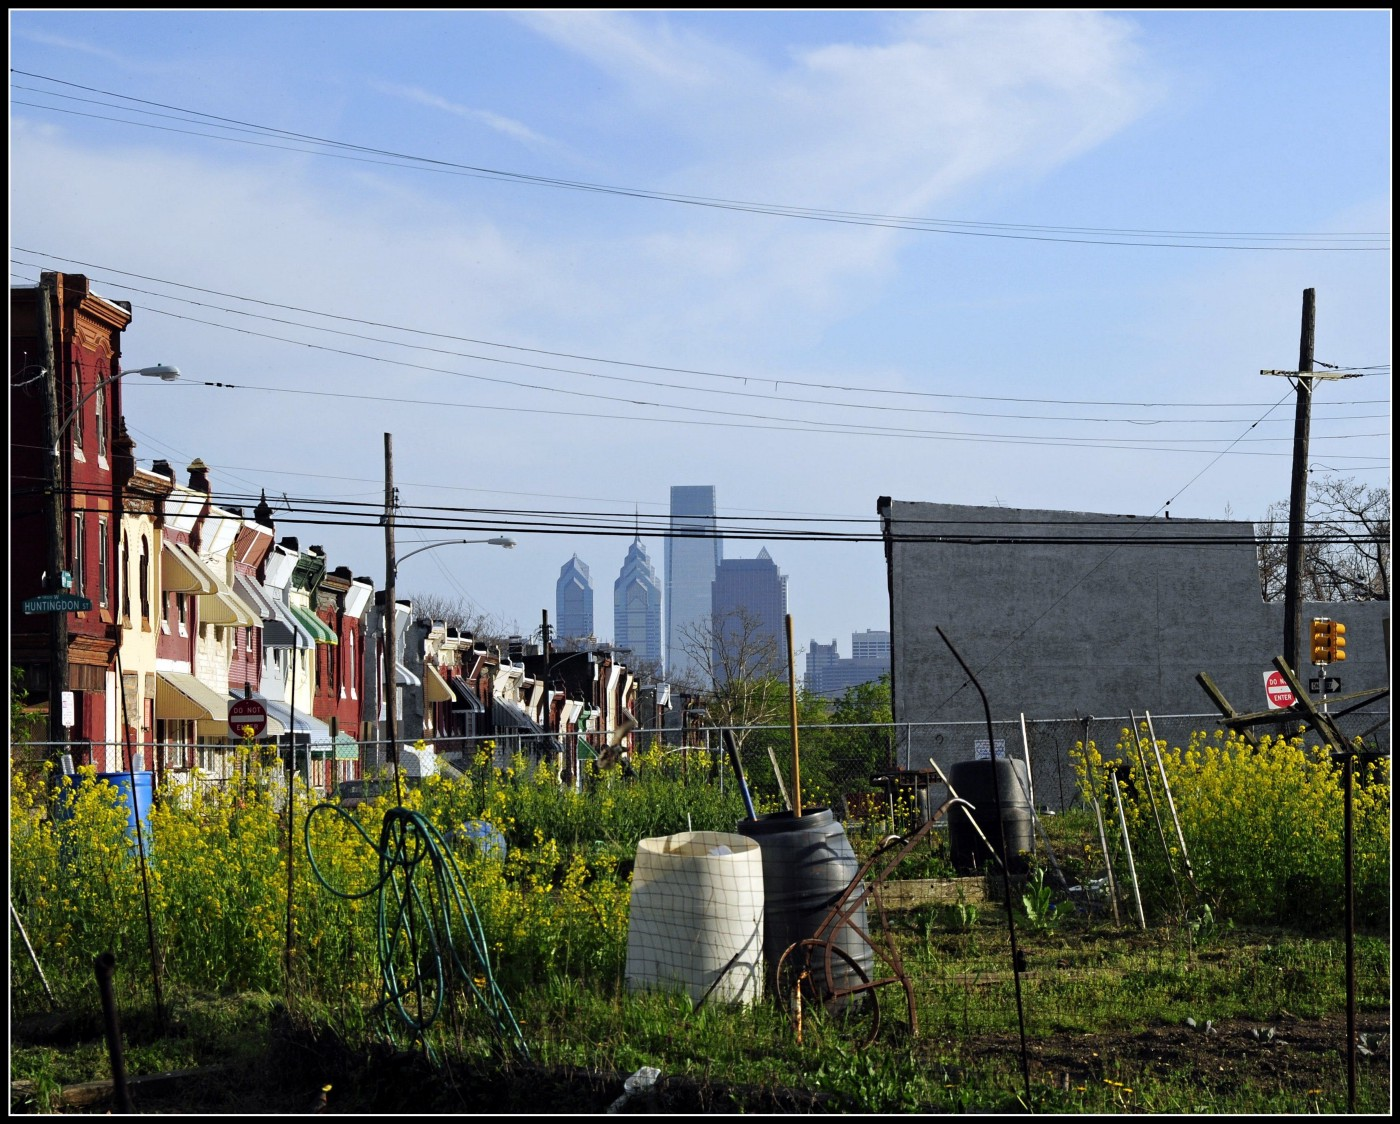 This is a view of Philadelphia from the Glenwood Green Acres, a public garden located at 18th Street and Glenwood Avenue.